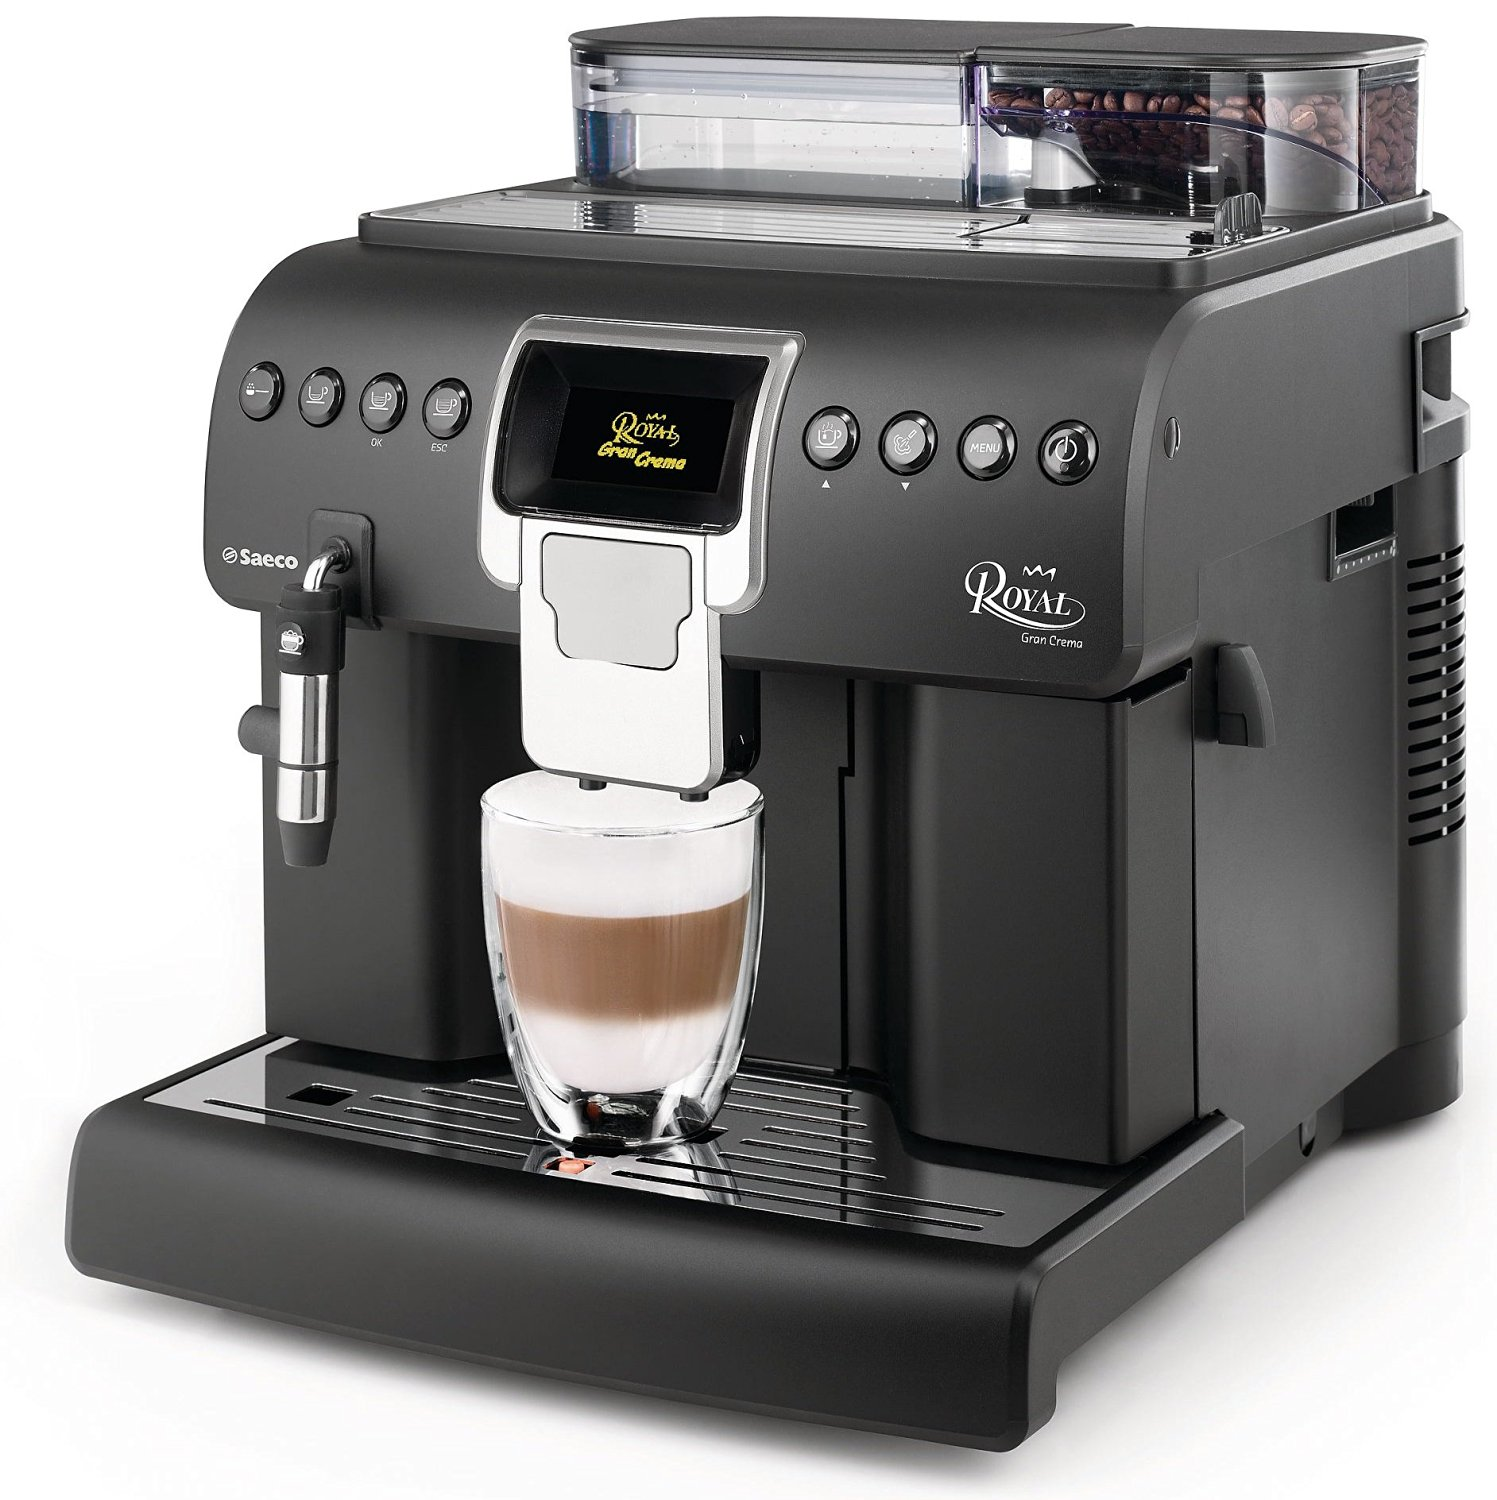 Saeco HD8920/01 Royal Gran Crema im Test